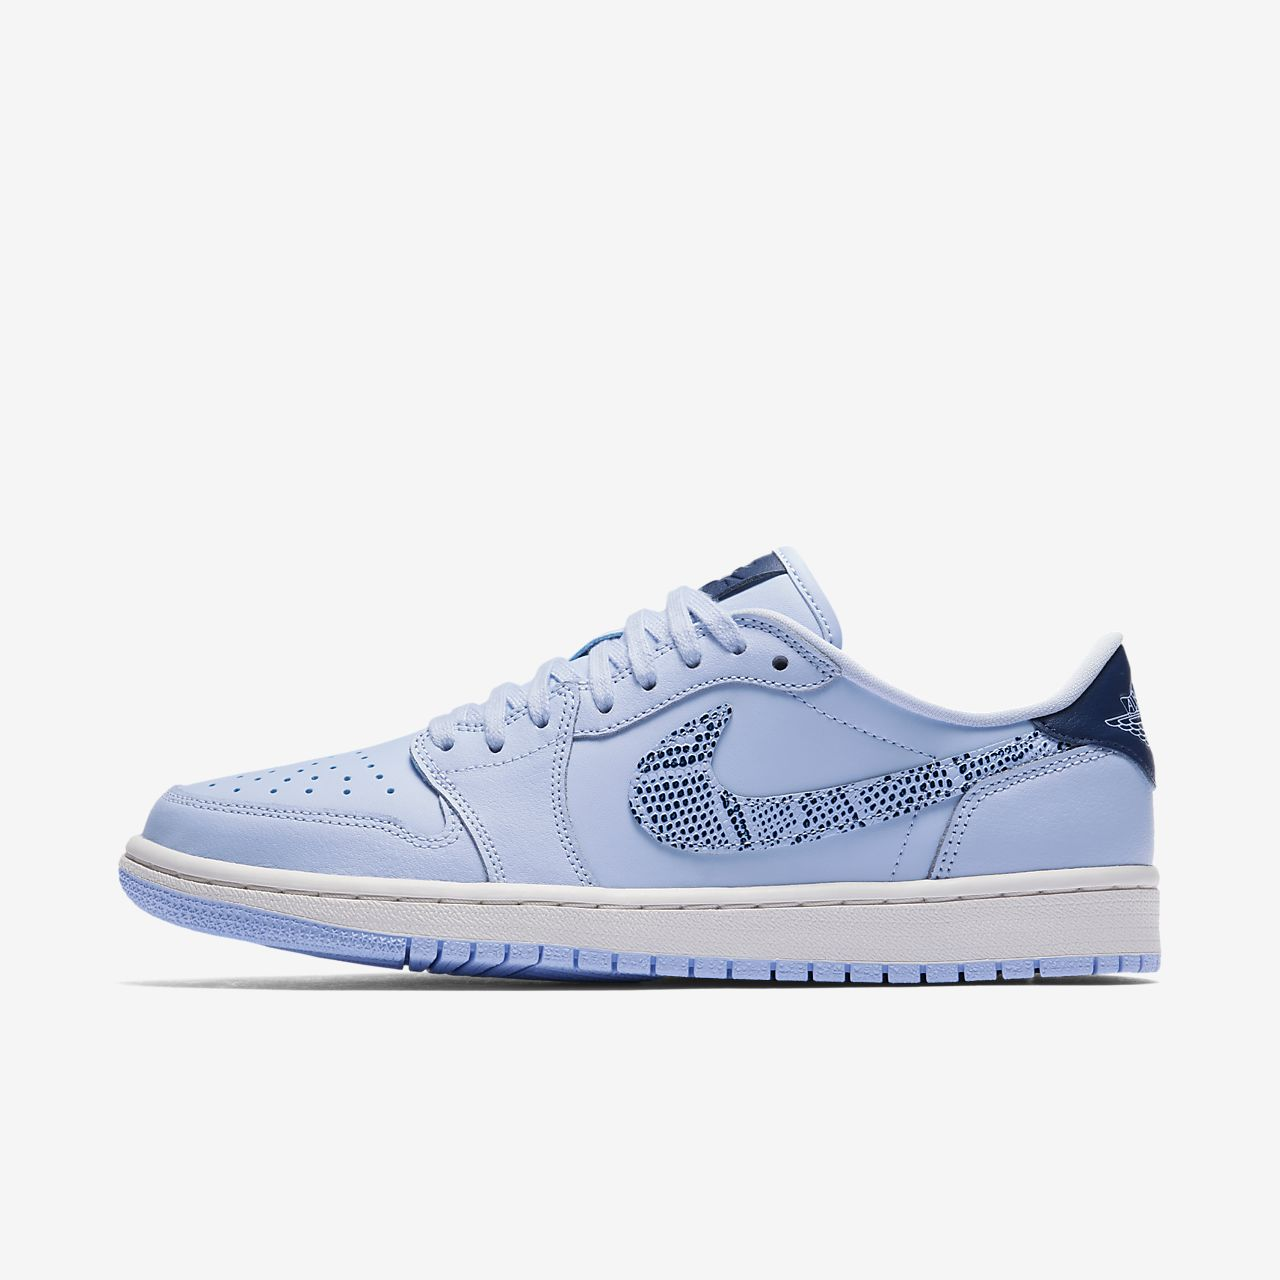 e83950a43755 Air Jordan 1 Retro Low OG Women s Shoe. Nike.com NZ